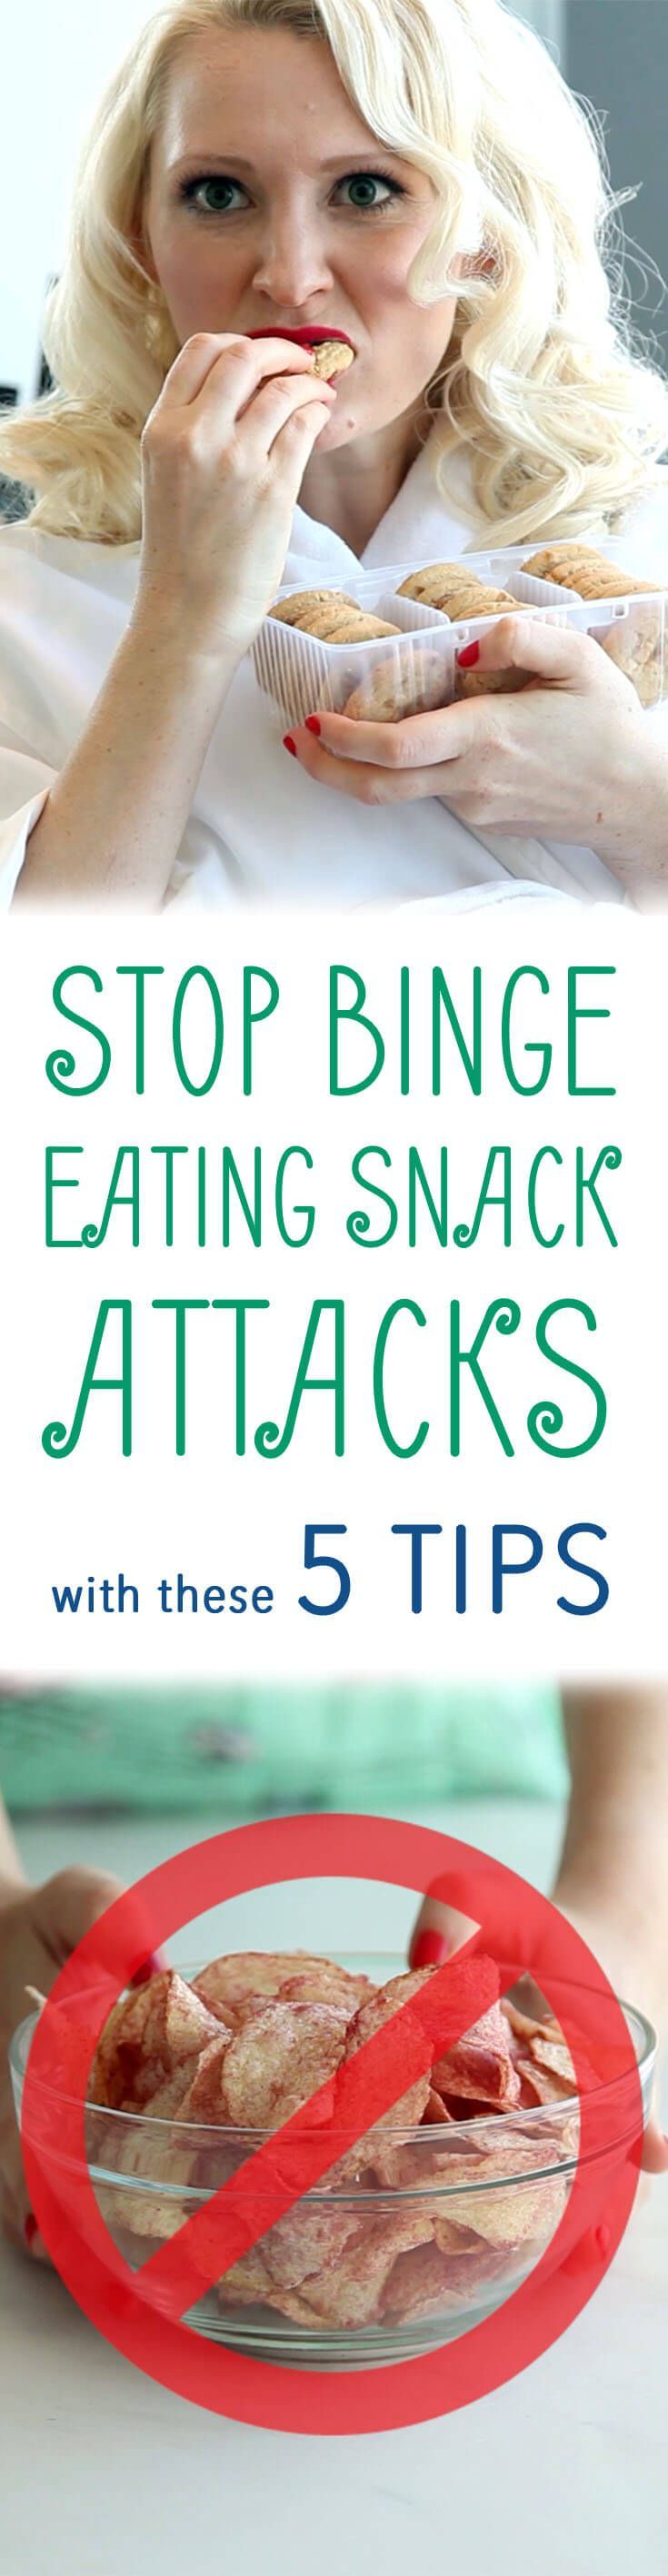 The top tips on how to stop binge eating snack attacks before they start to help you manage your weight and diet.